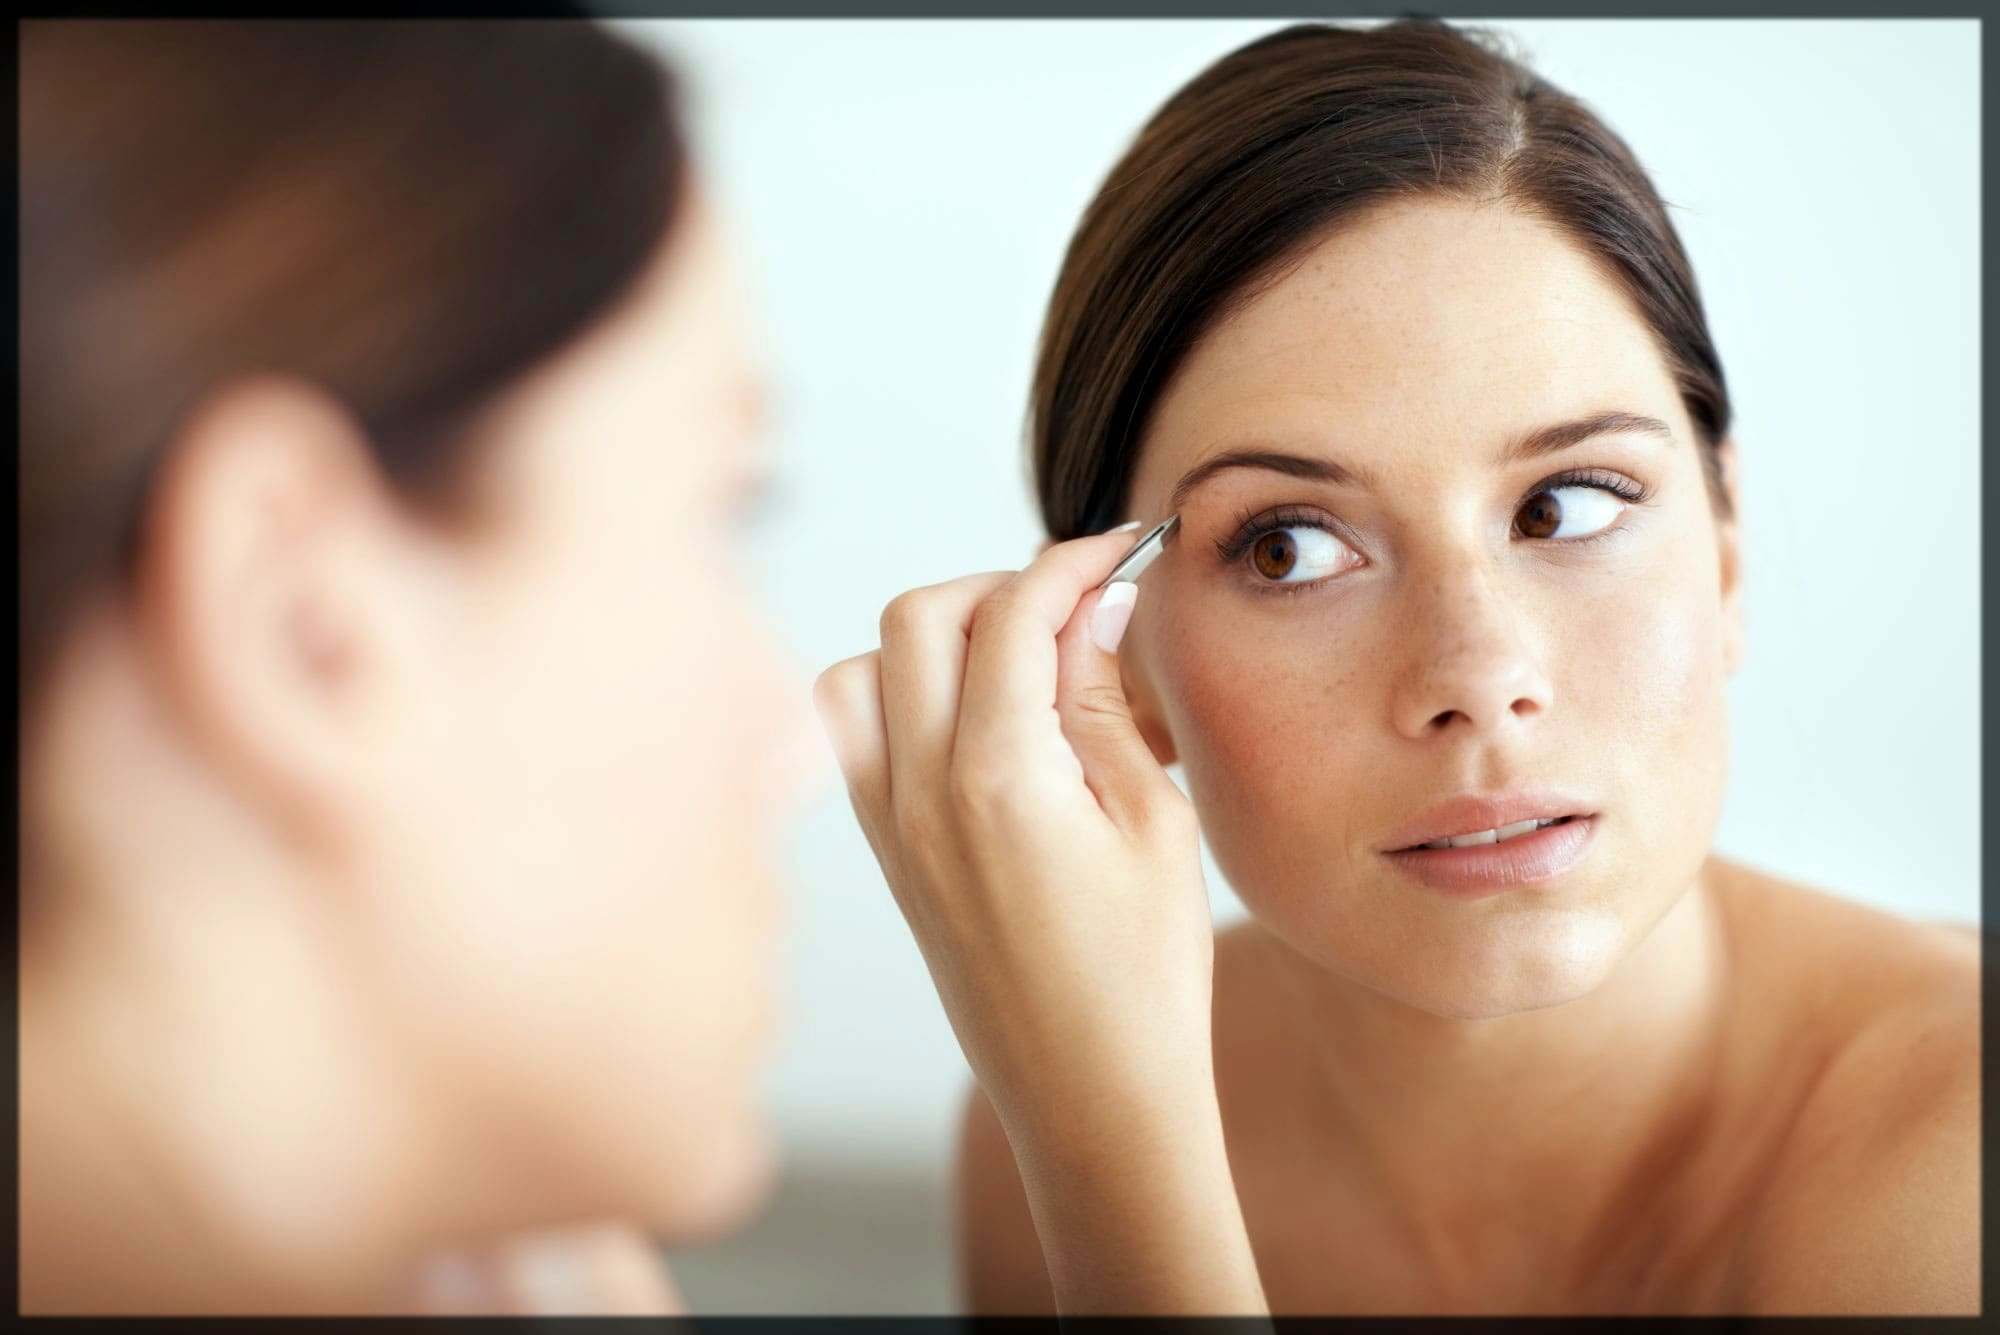 How To Shape Your Eyebrows At Home Naturally